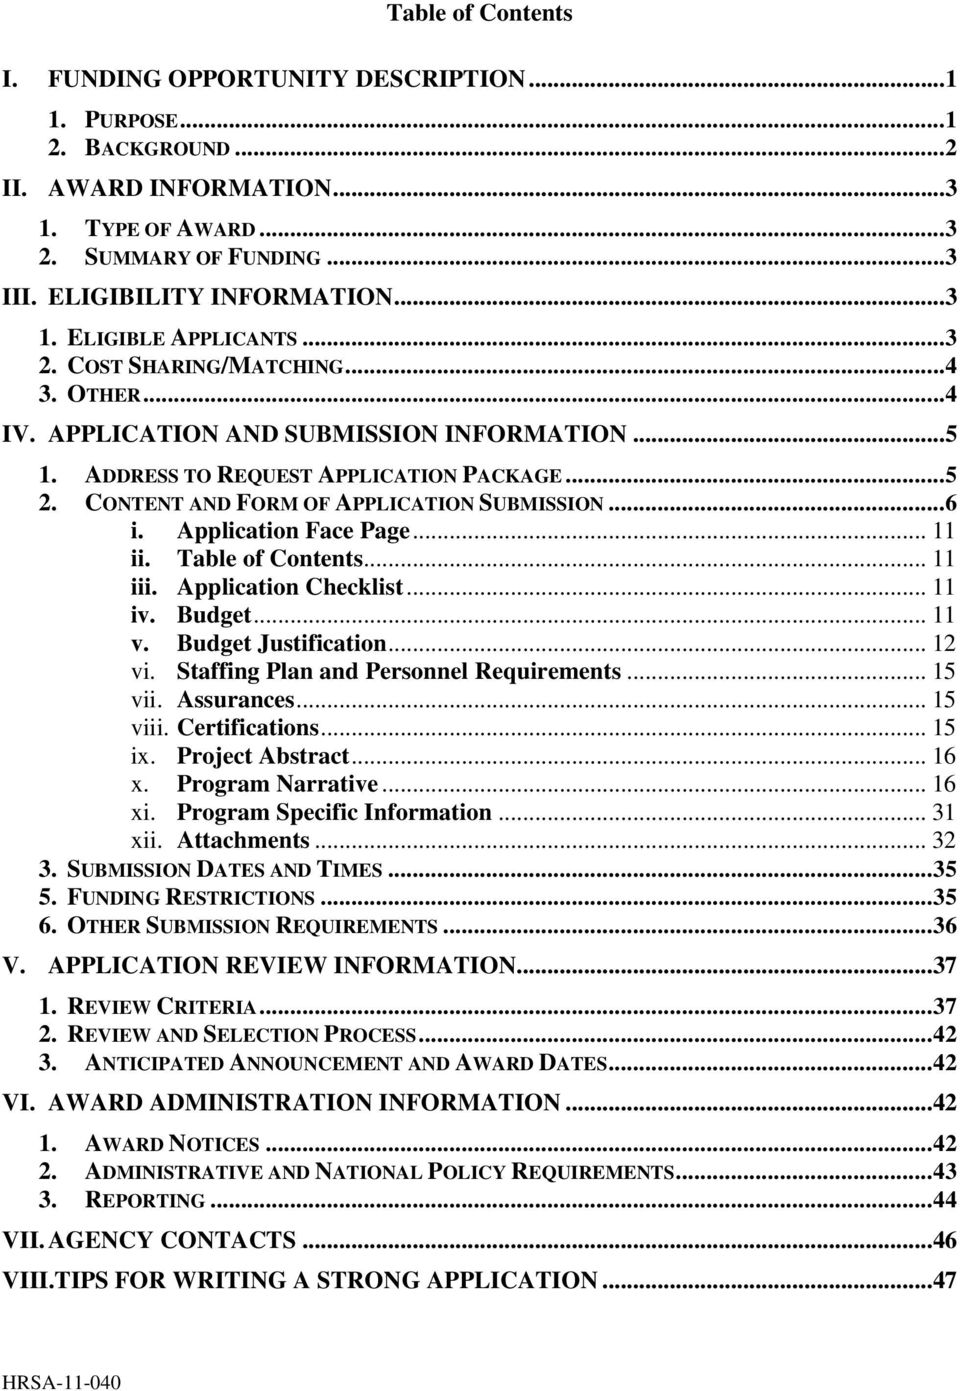 Application Face Page... 11 ii. Table of Contents... 11 iii. Application Checklist... 11 iv. Budget... 11 v. Budget Justification... 12 vi. Staffing Plan and Personnel Requirements... 15 vii.